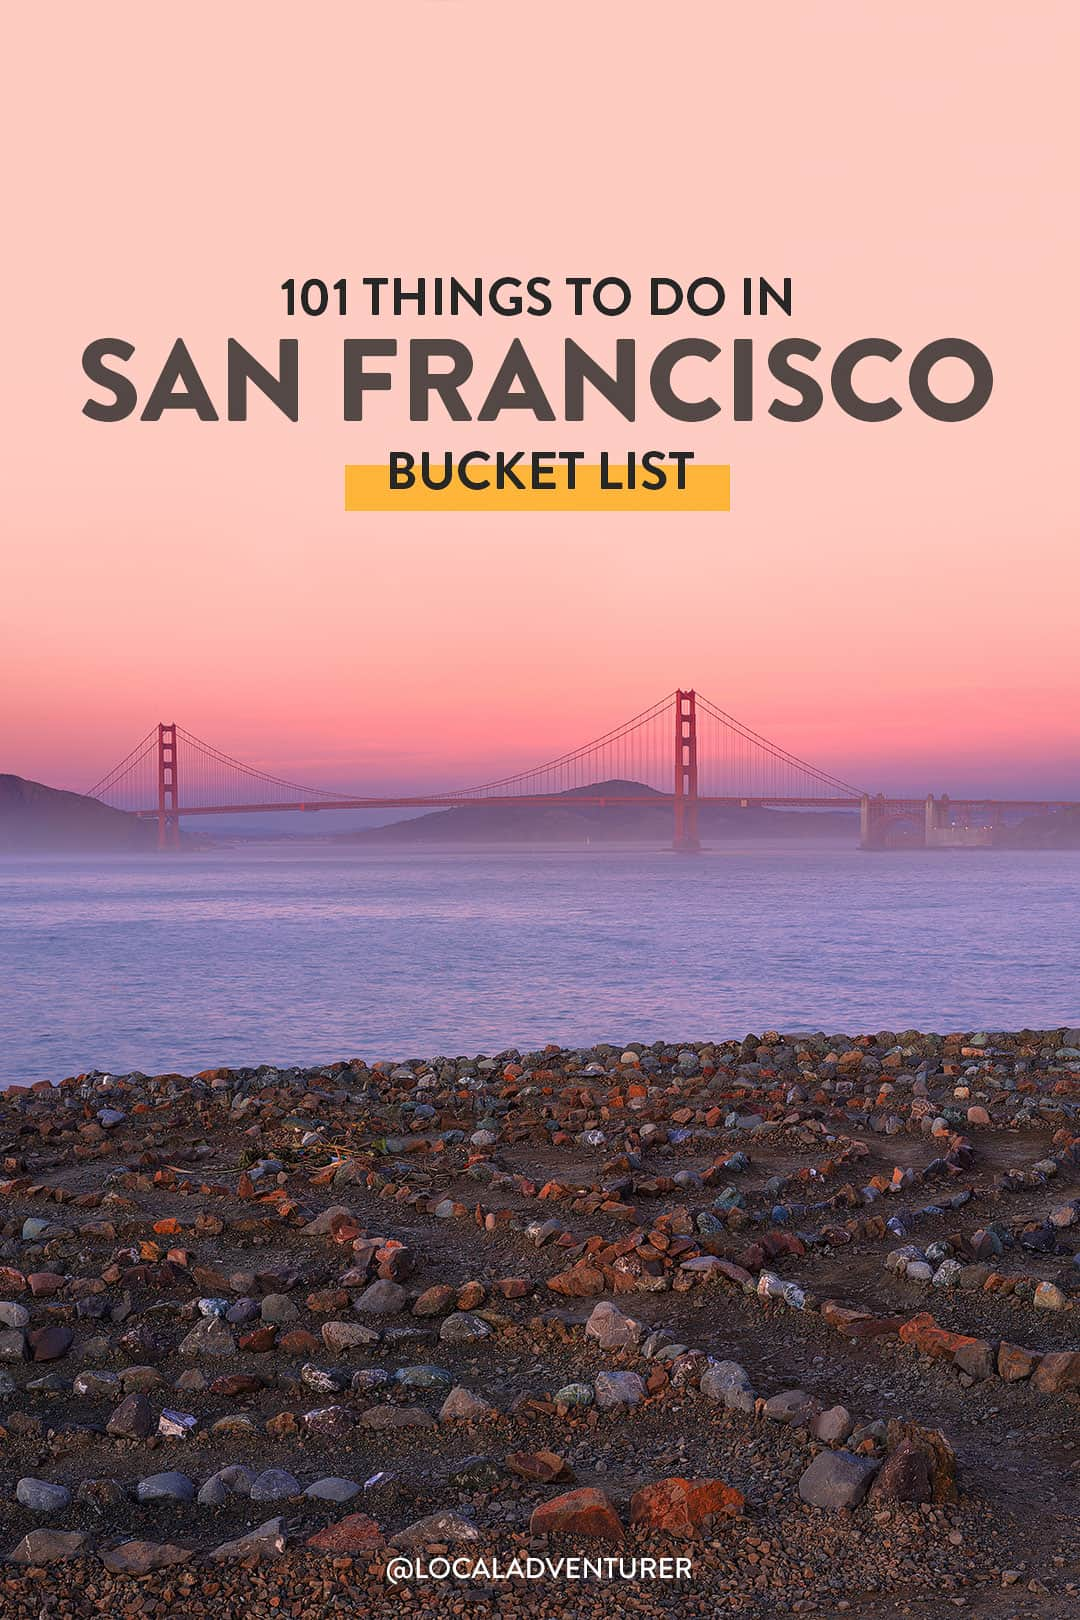 101 things to do in San Francisco